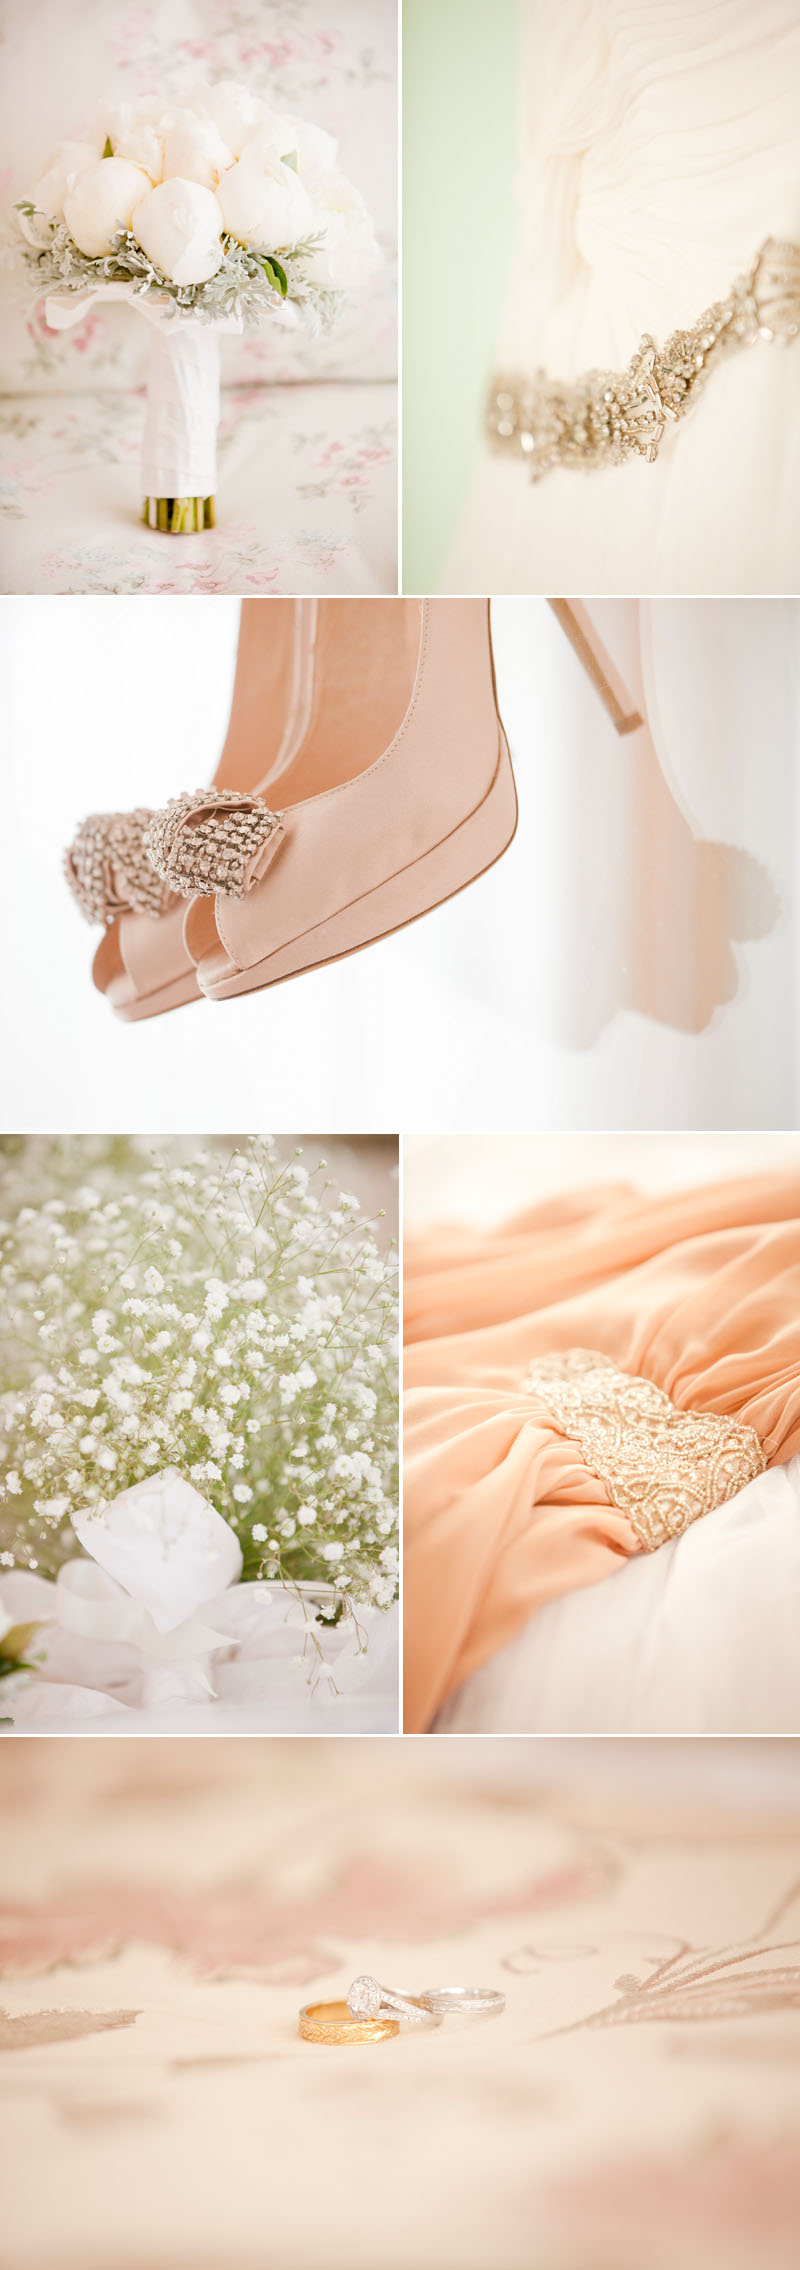 wedding details photography